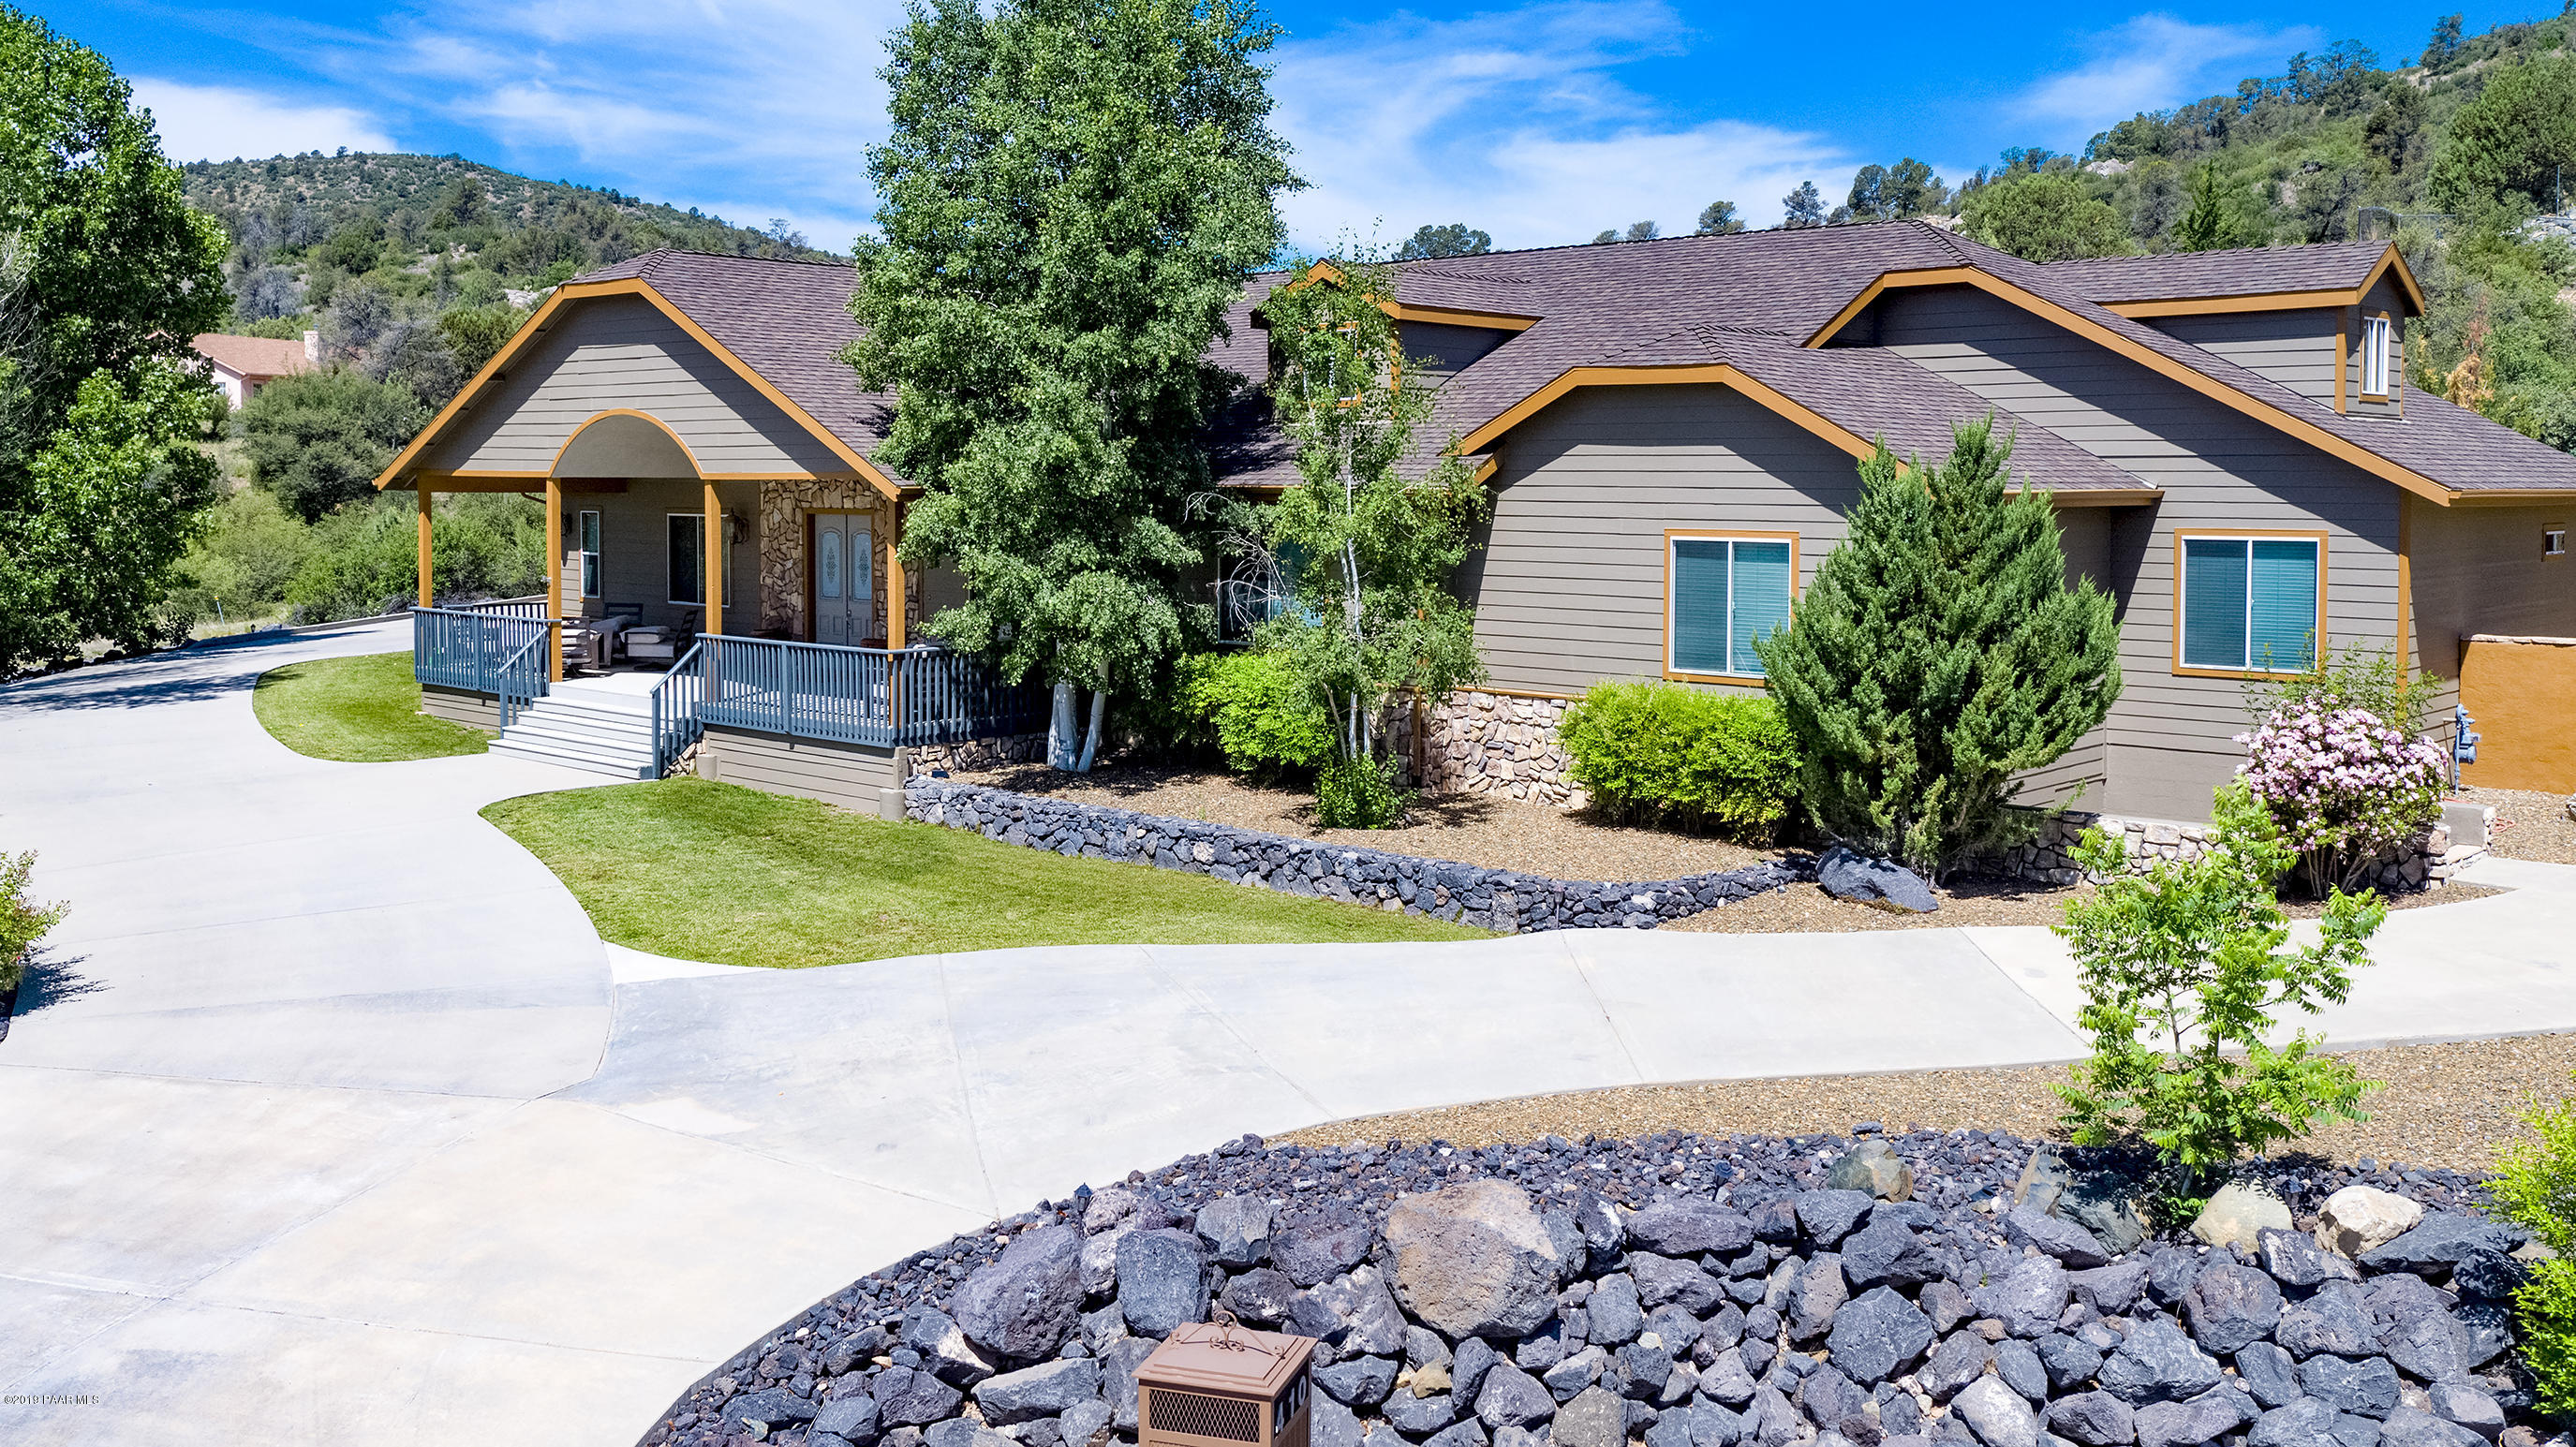 Photo of 410 Lynx Creek, Prescott, AZ 86303